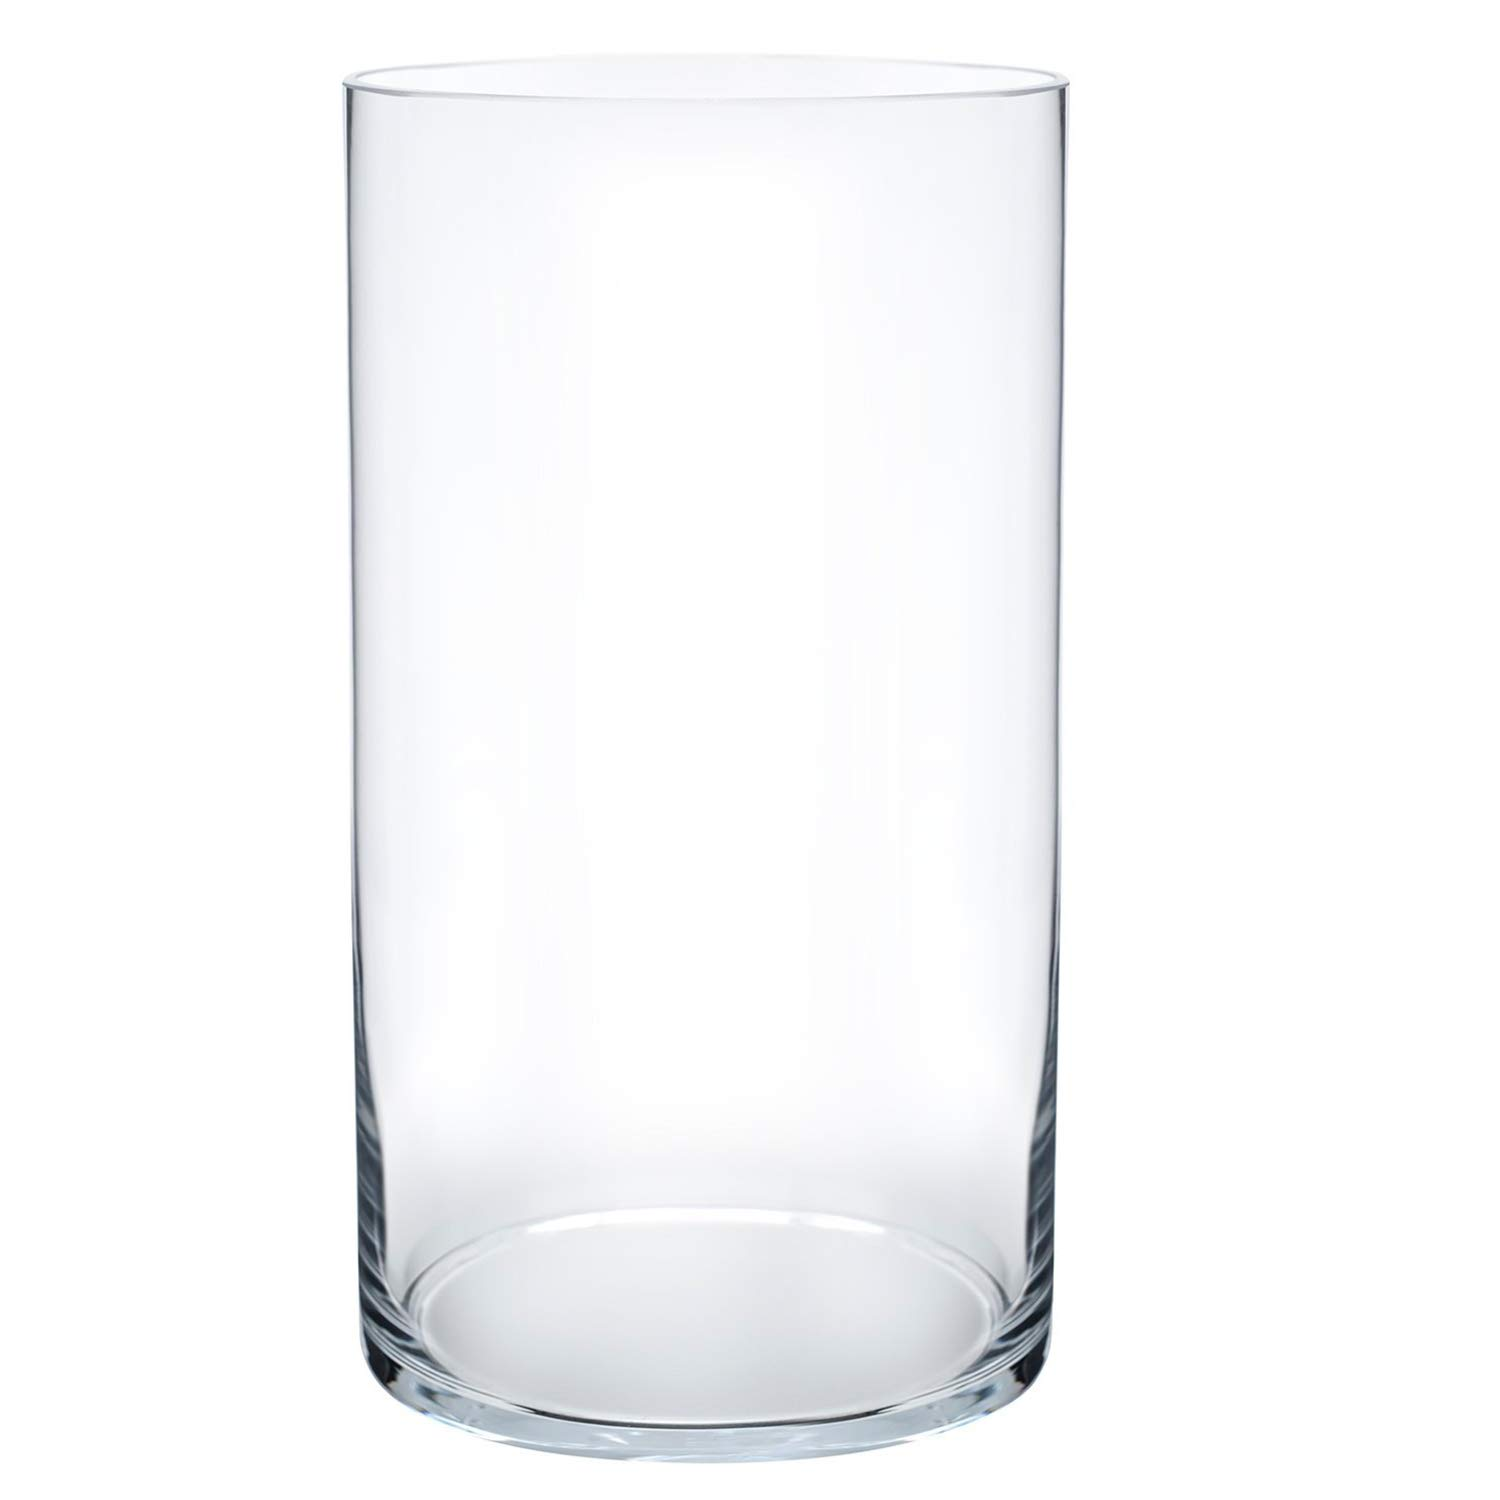 225 & Tall Clear Vases for Centerpieces: Amazon.com